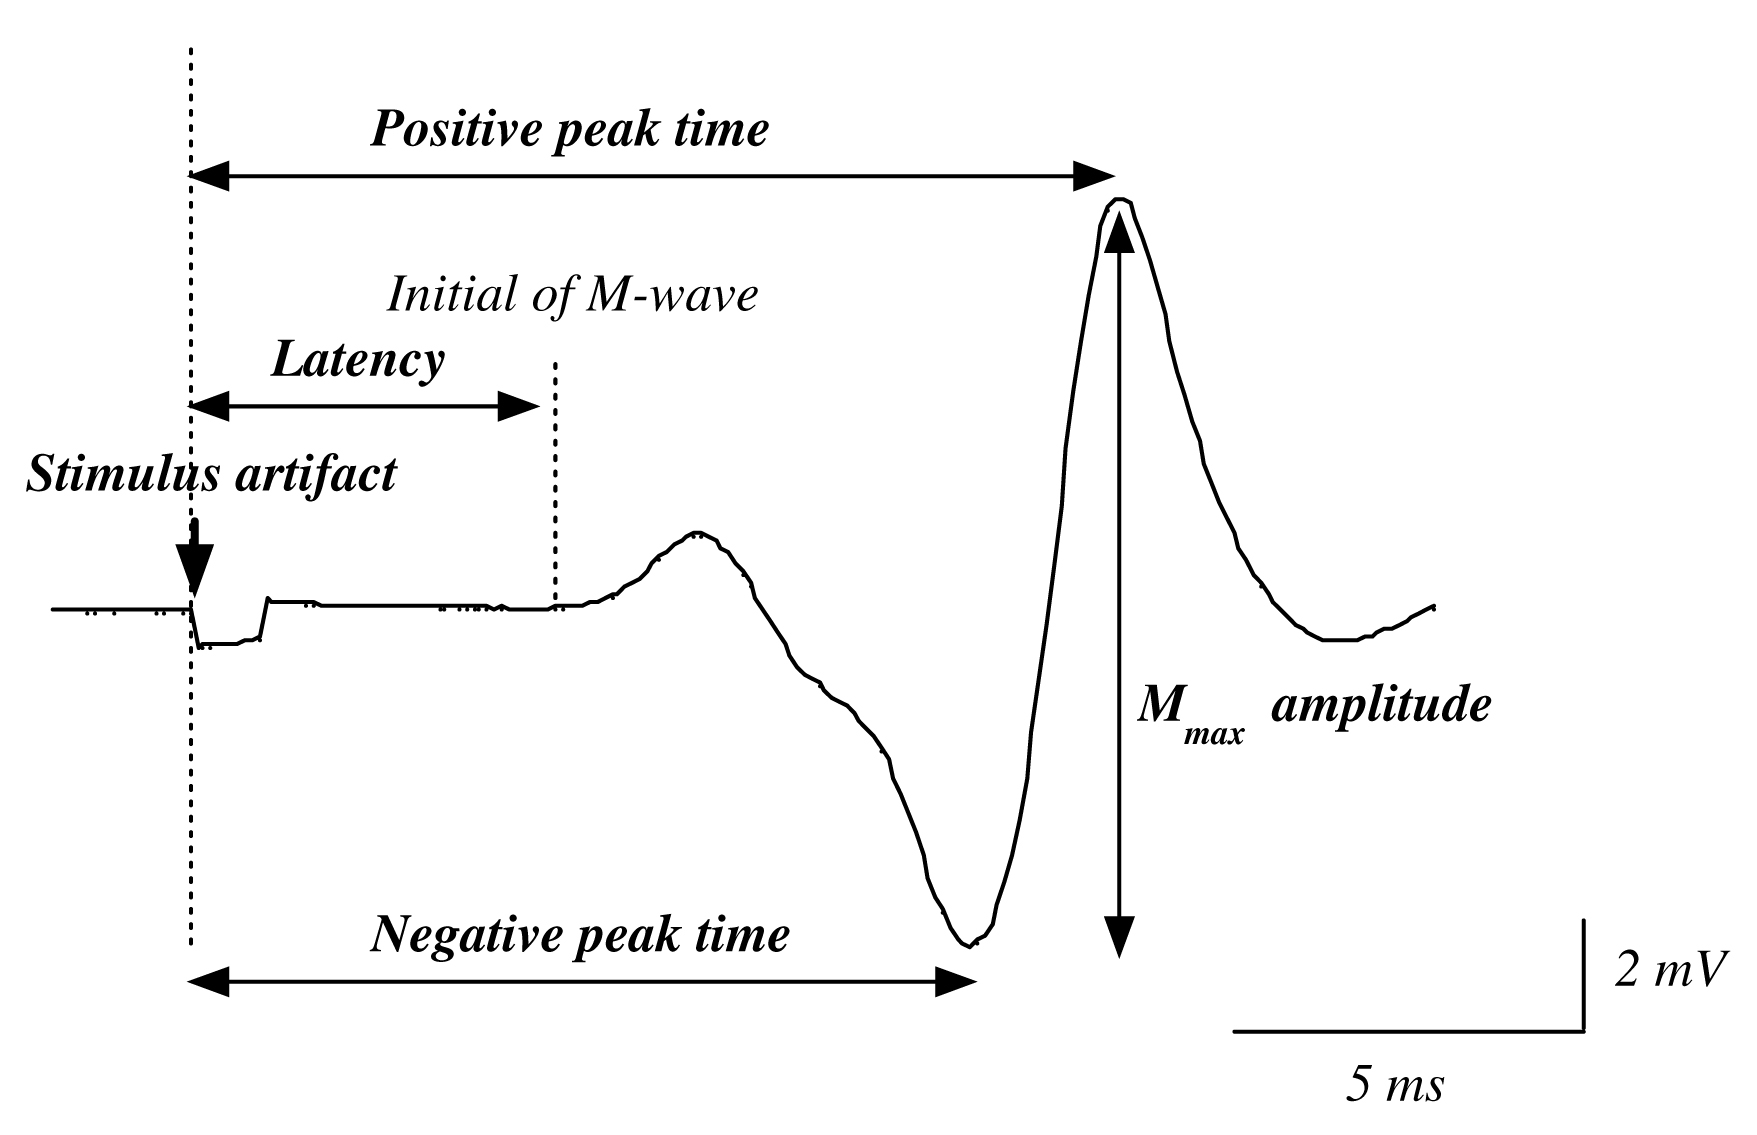 原著 | Buoyancy Induced Decrease of Maximal M-wave Amplitude